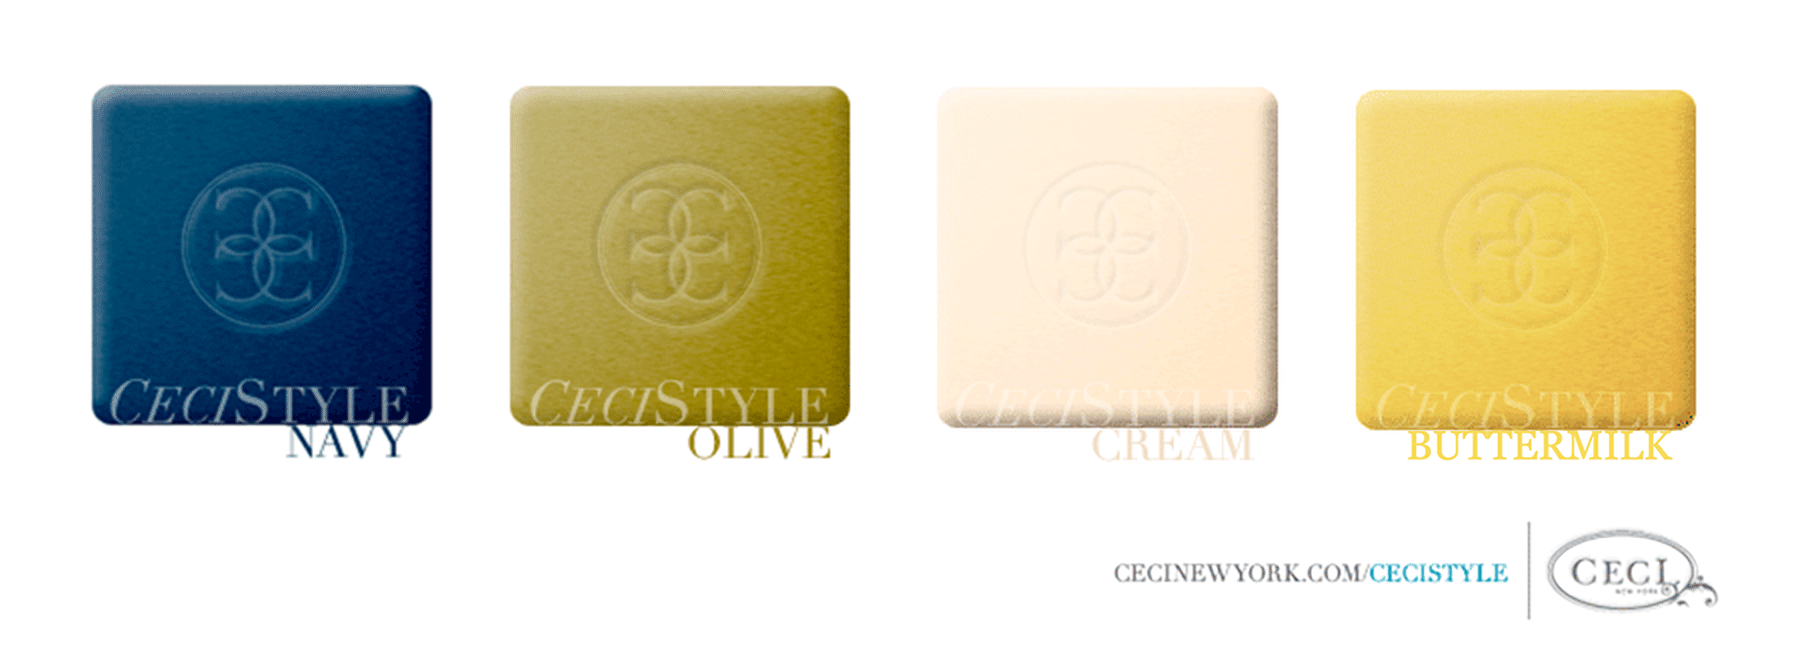 Ceci's Color Stories - Navy & Olive Wedding Color Swatches - color swatches, ceci johnson, ceci new york, ceci style, color stories, buttermilk, cream, navy, olive, inspiration